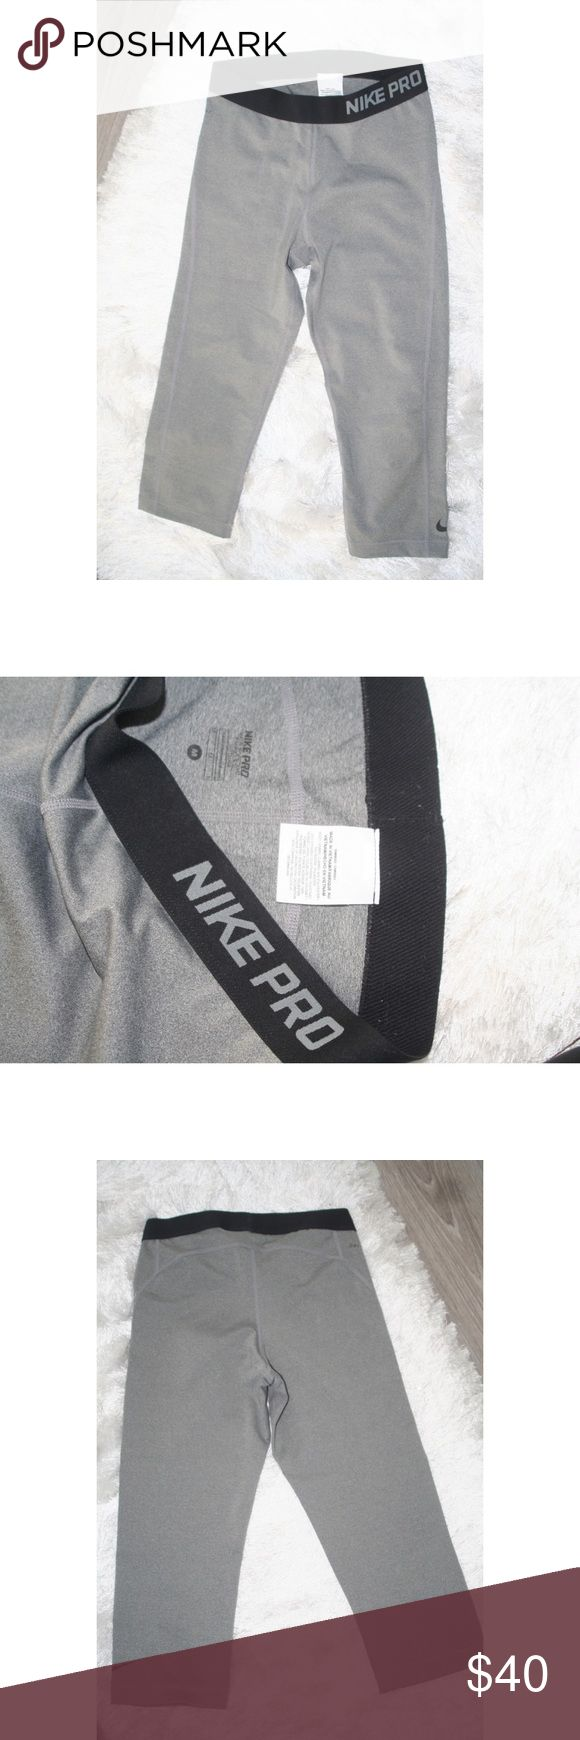 Nike Pro Pants M Women's (Gray) Like new never worn. No trades ✌🏽 Nike Pants